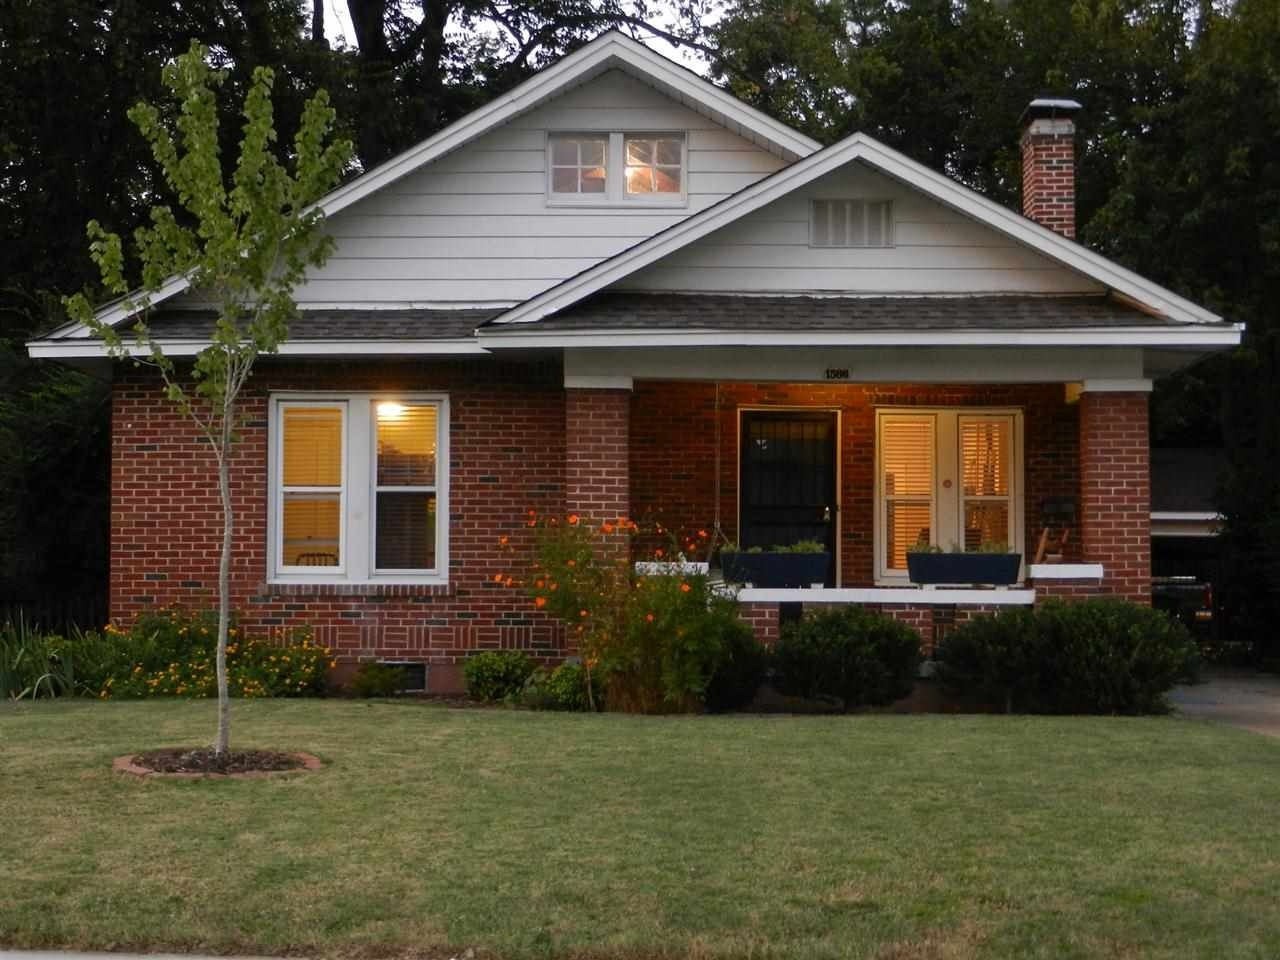 TX Affordable and Low Income Housing   PublicHousing com Crestshire  Village Apartment Homes   Dallas   For sale   185 000  Memphis  TN3 Bedroom House For Rent Dallas Tx   Mattress. Four Bedroom Houses For Rent In Dallas Tx. Home Design Ideas